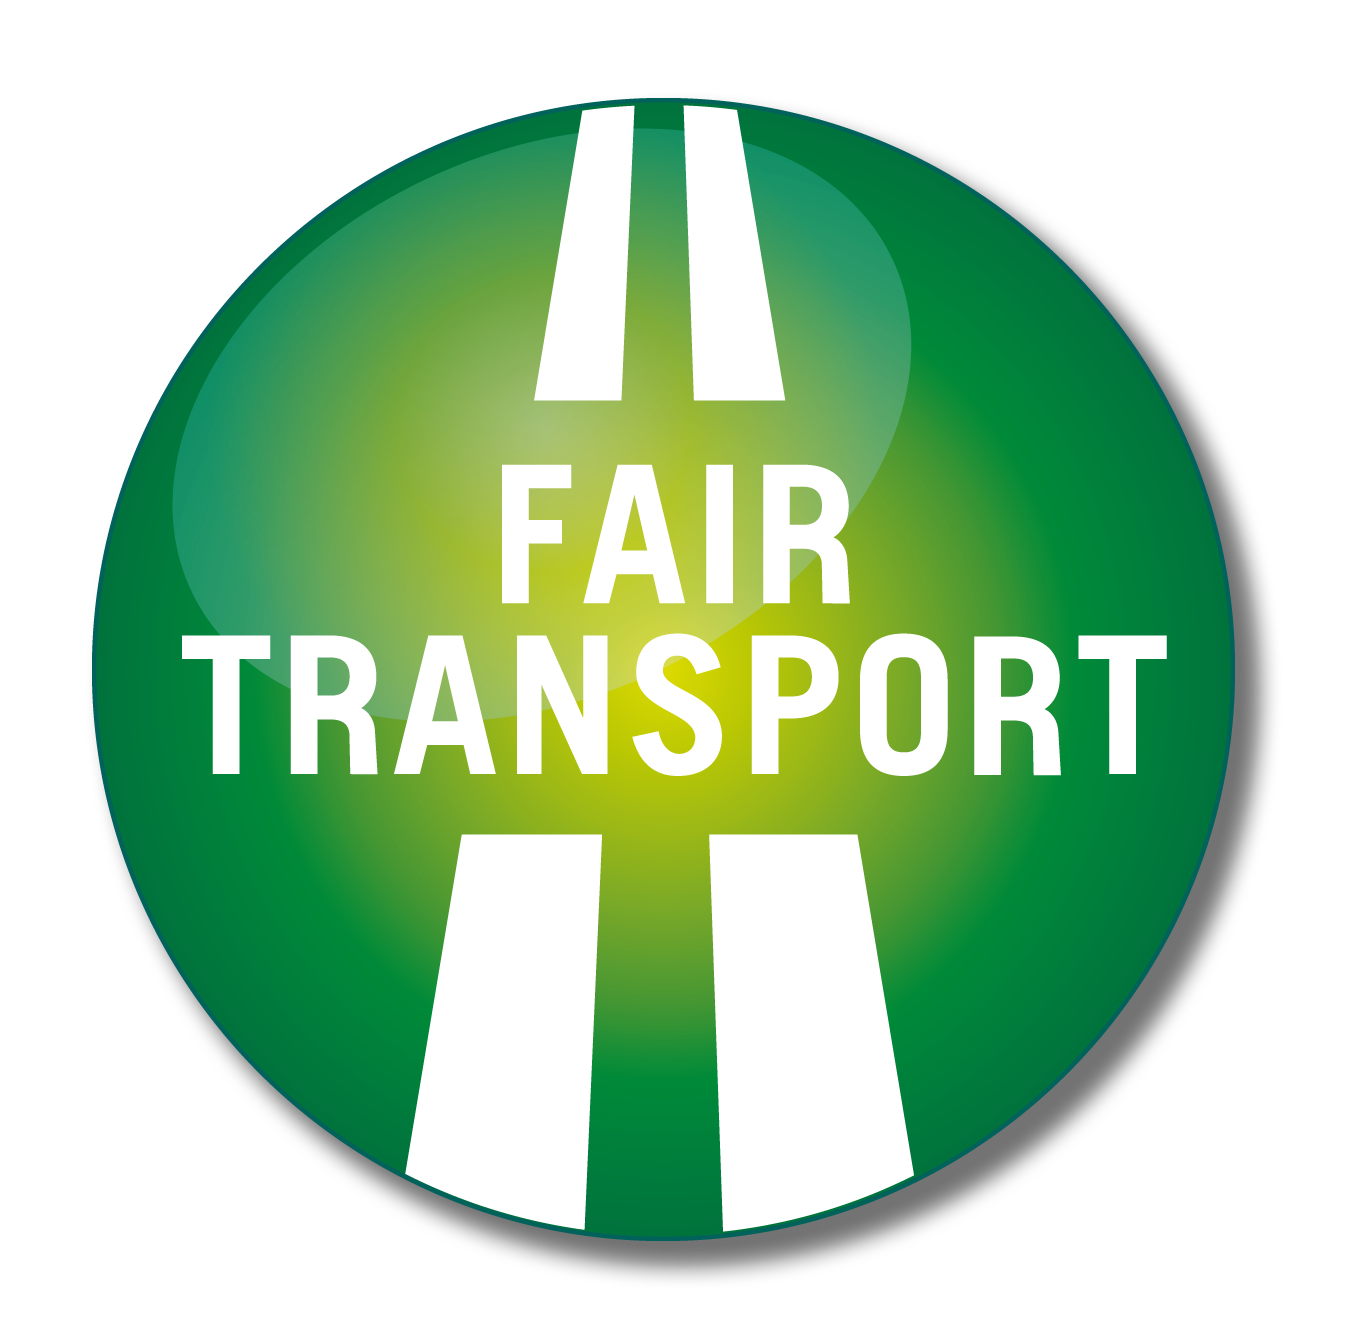 DK Transport Samarbetspartner Fairtransport